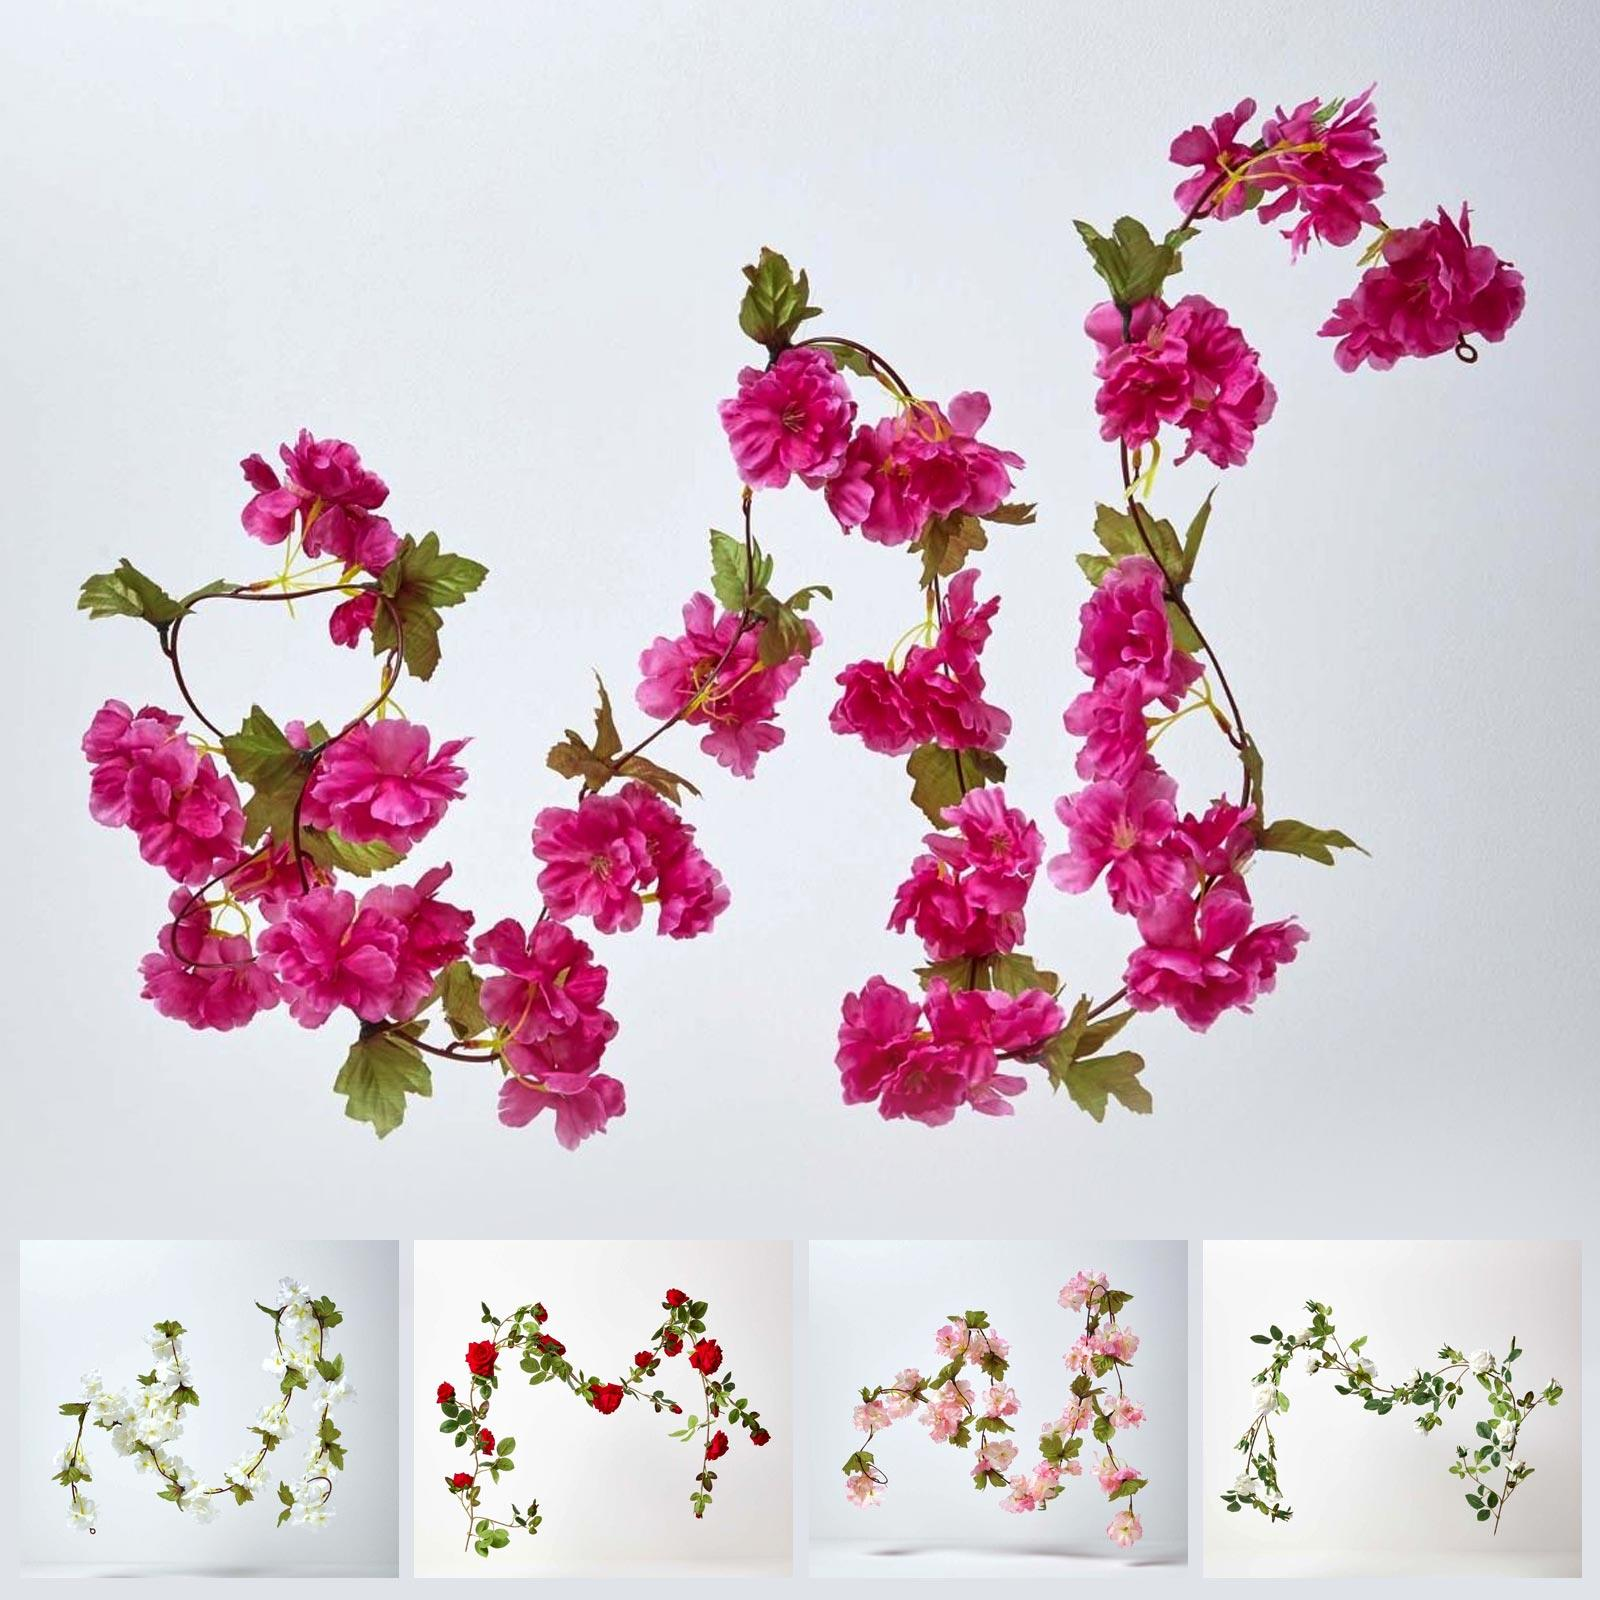 Artificial Garland With Flowers For Indoor Wedding Party Decoration Ebay